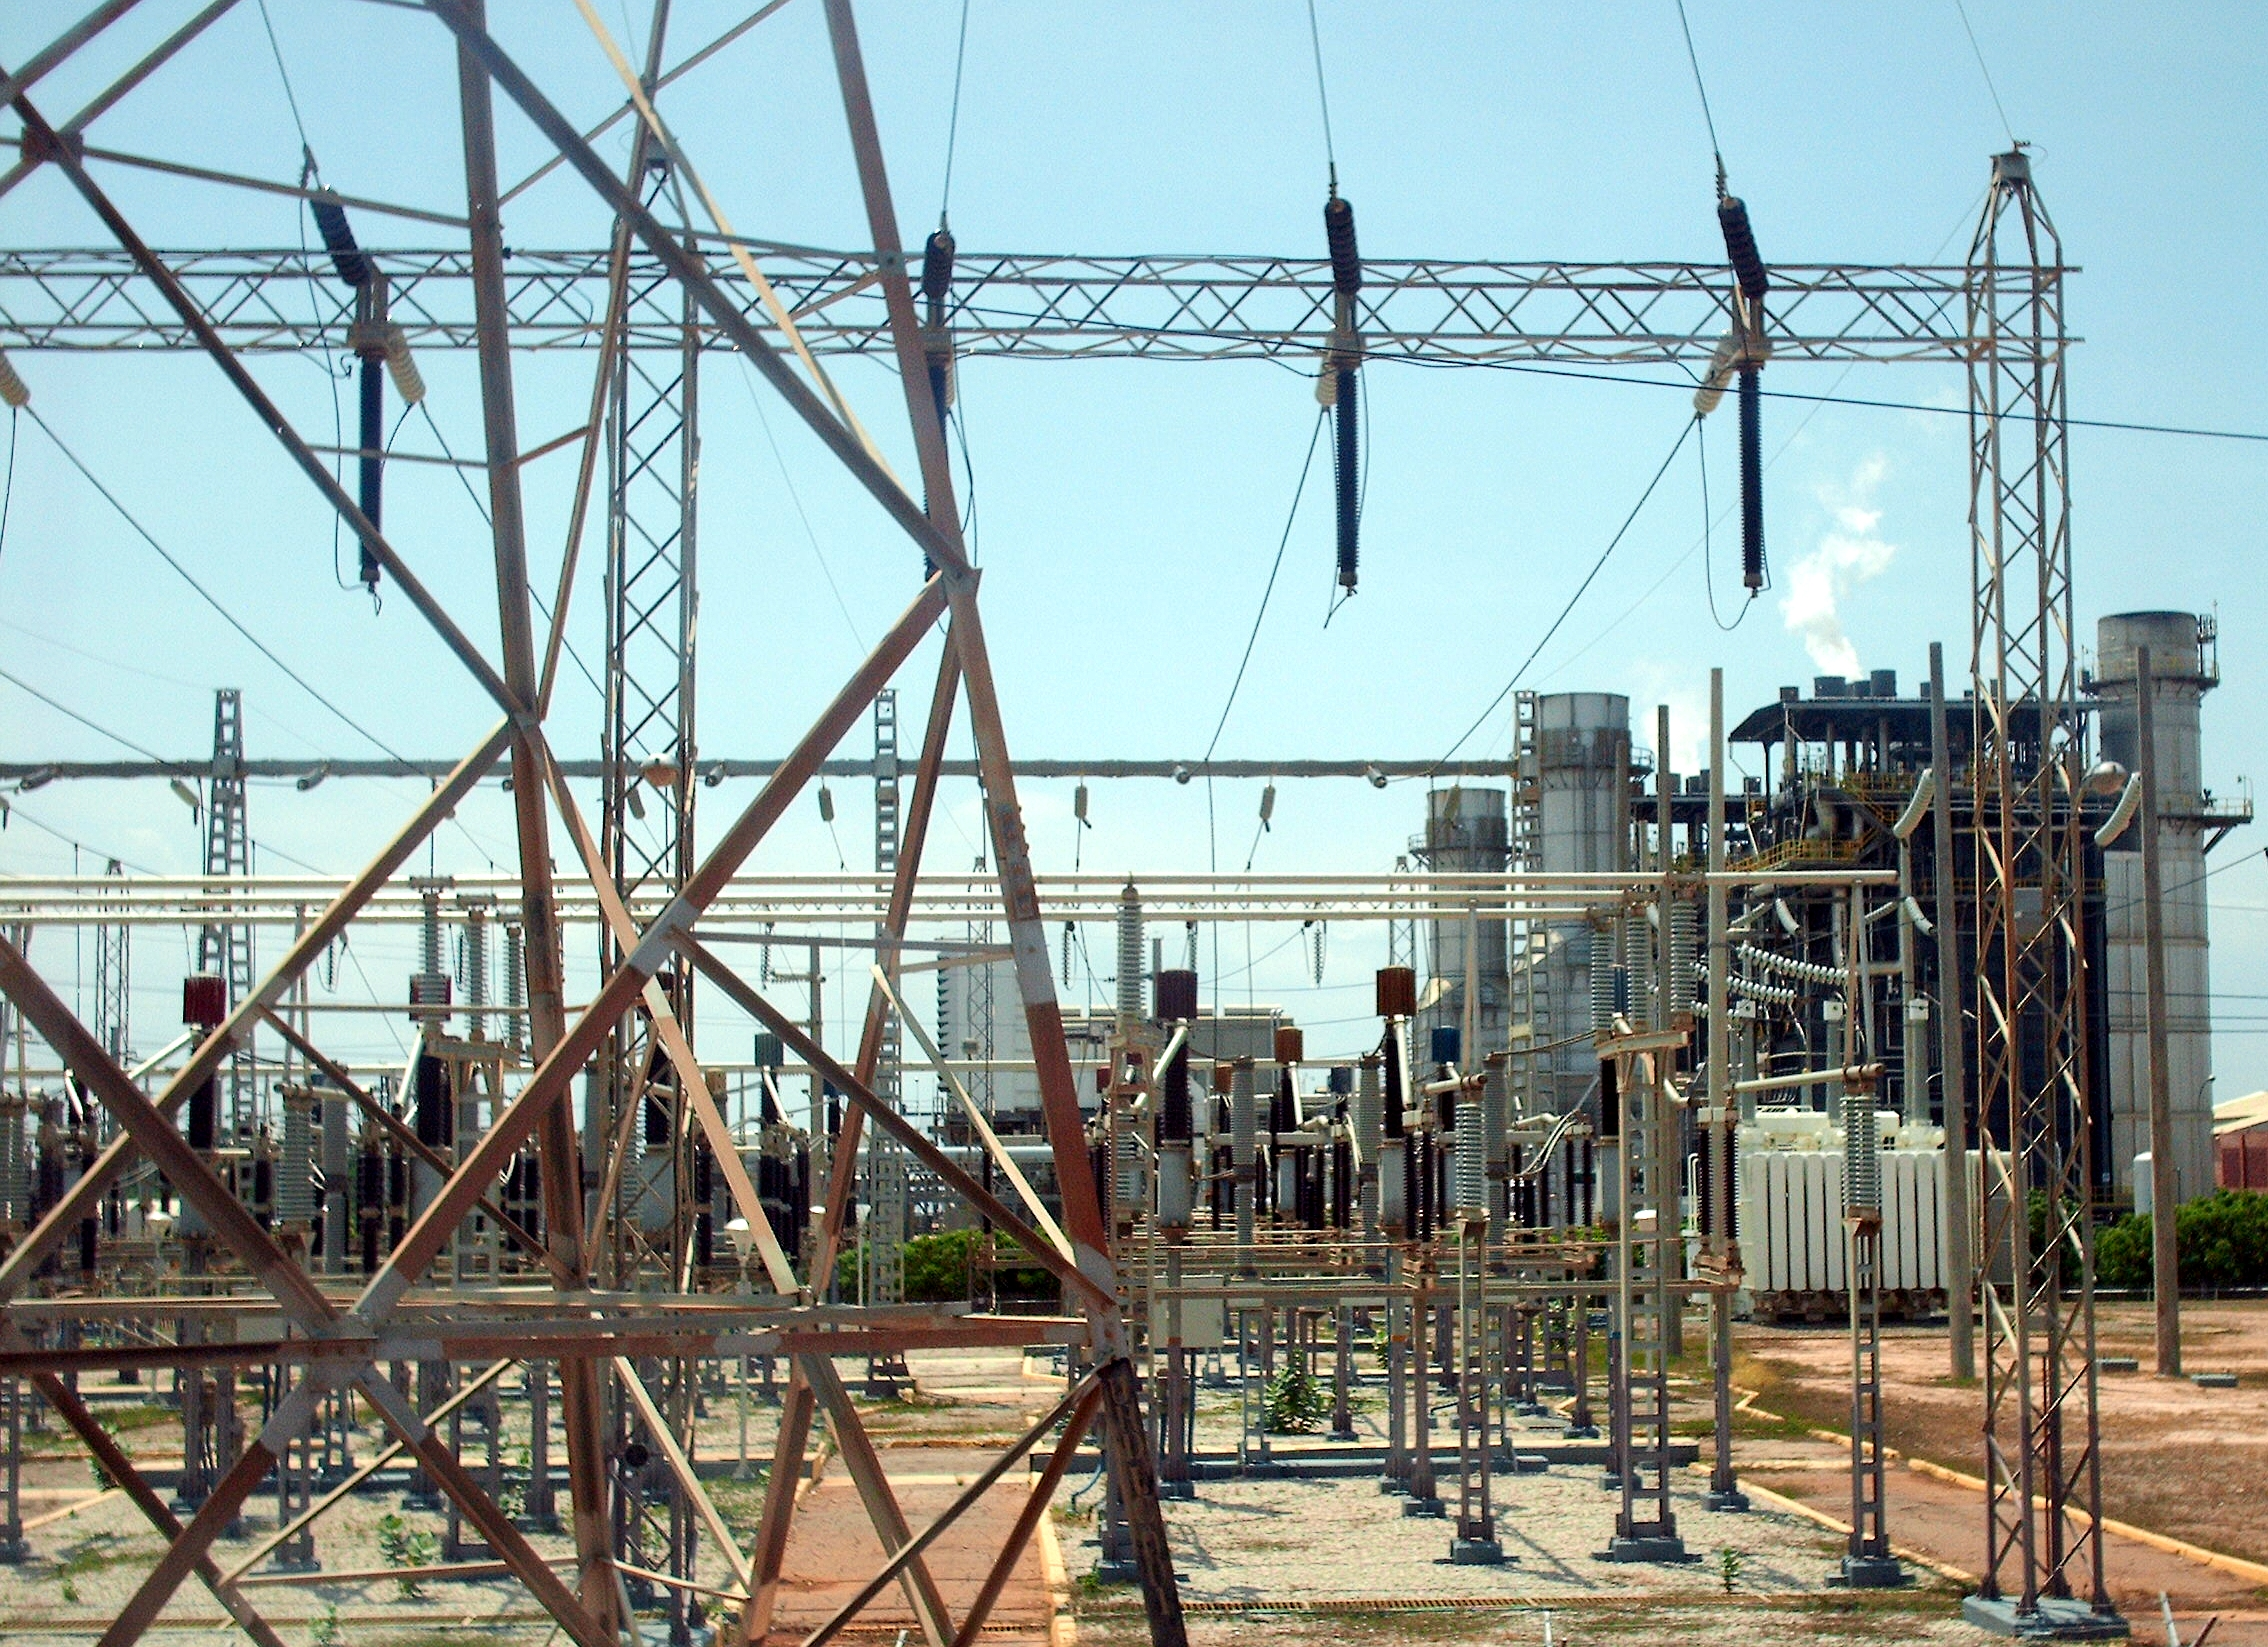 File:Electric plant.jpg